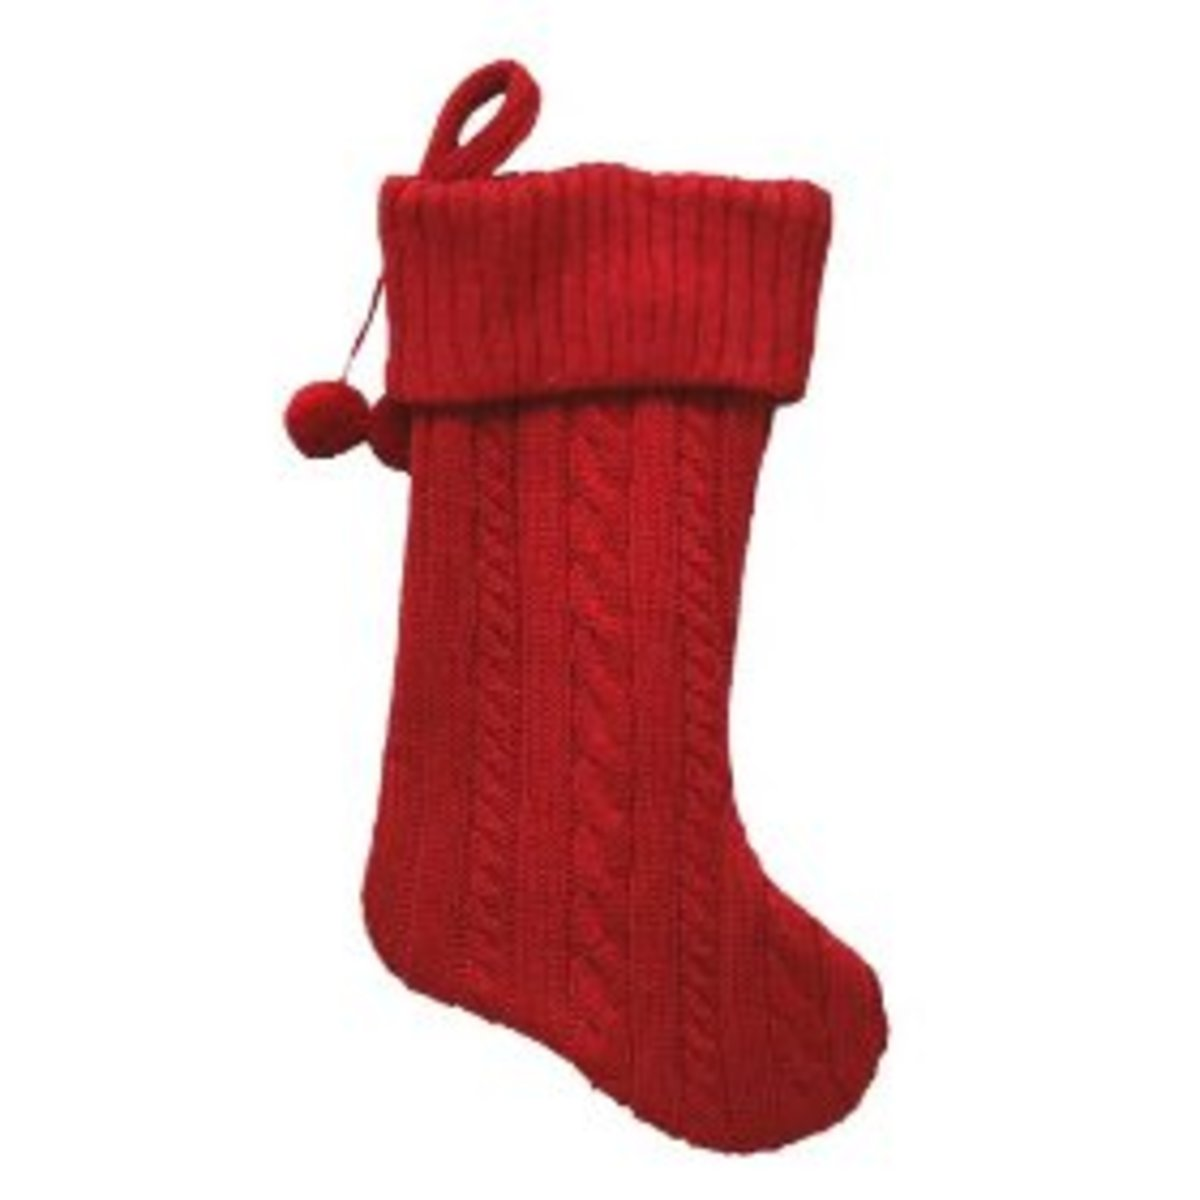 Free Knitting Patterns For Christmas Stockings : Red Christmas Stockings